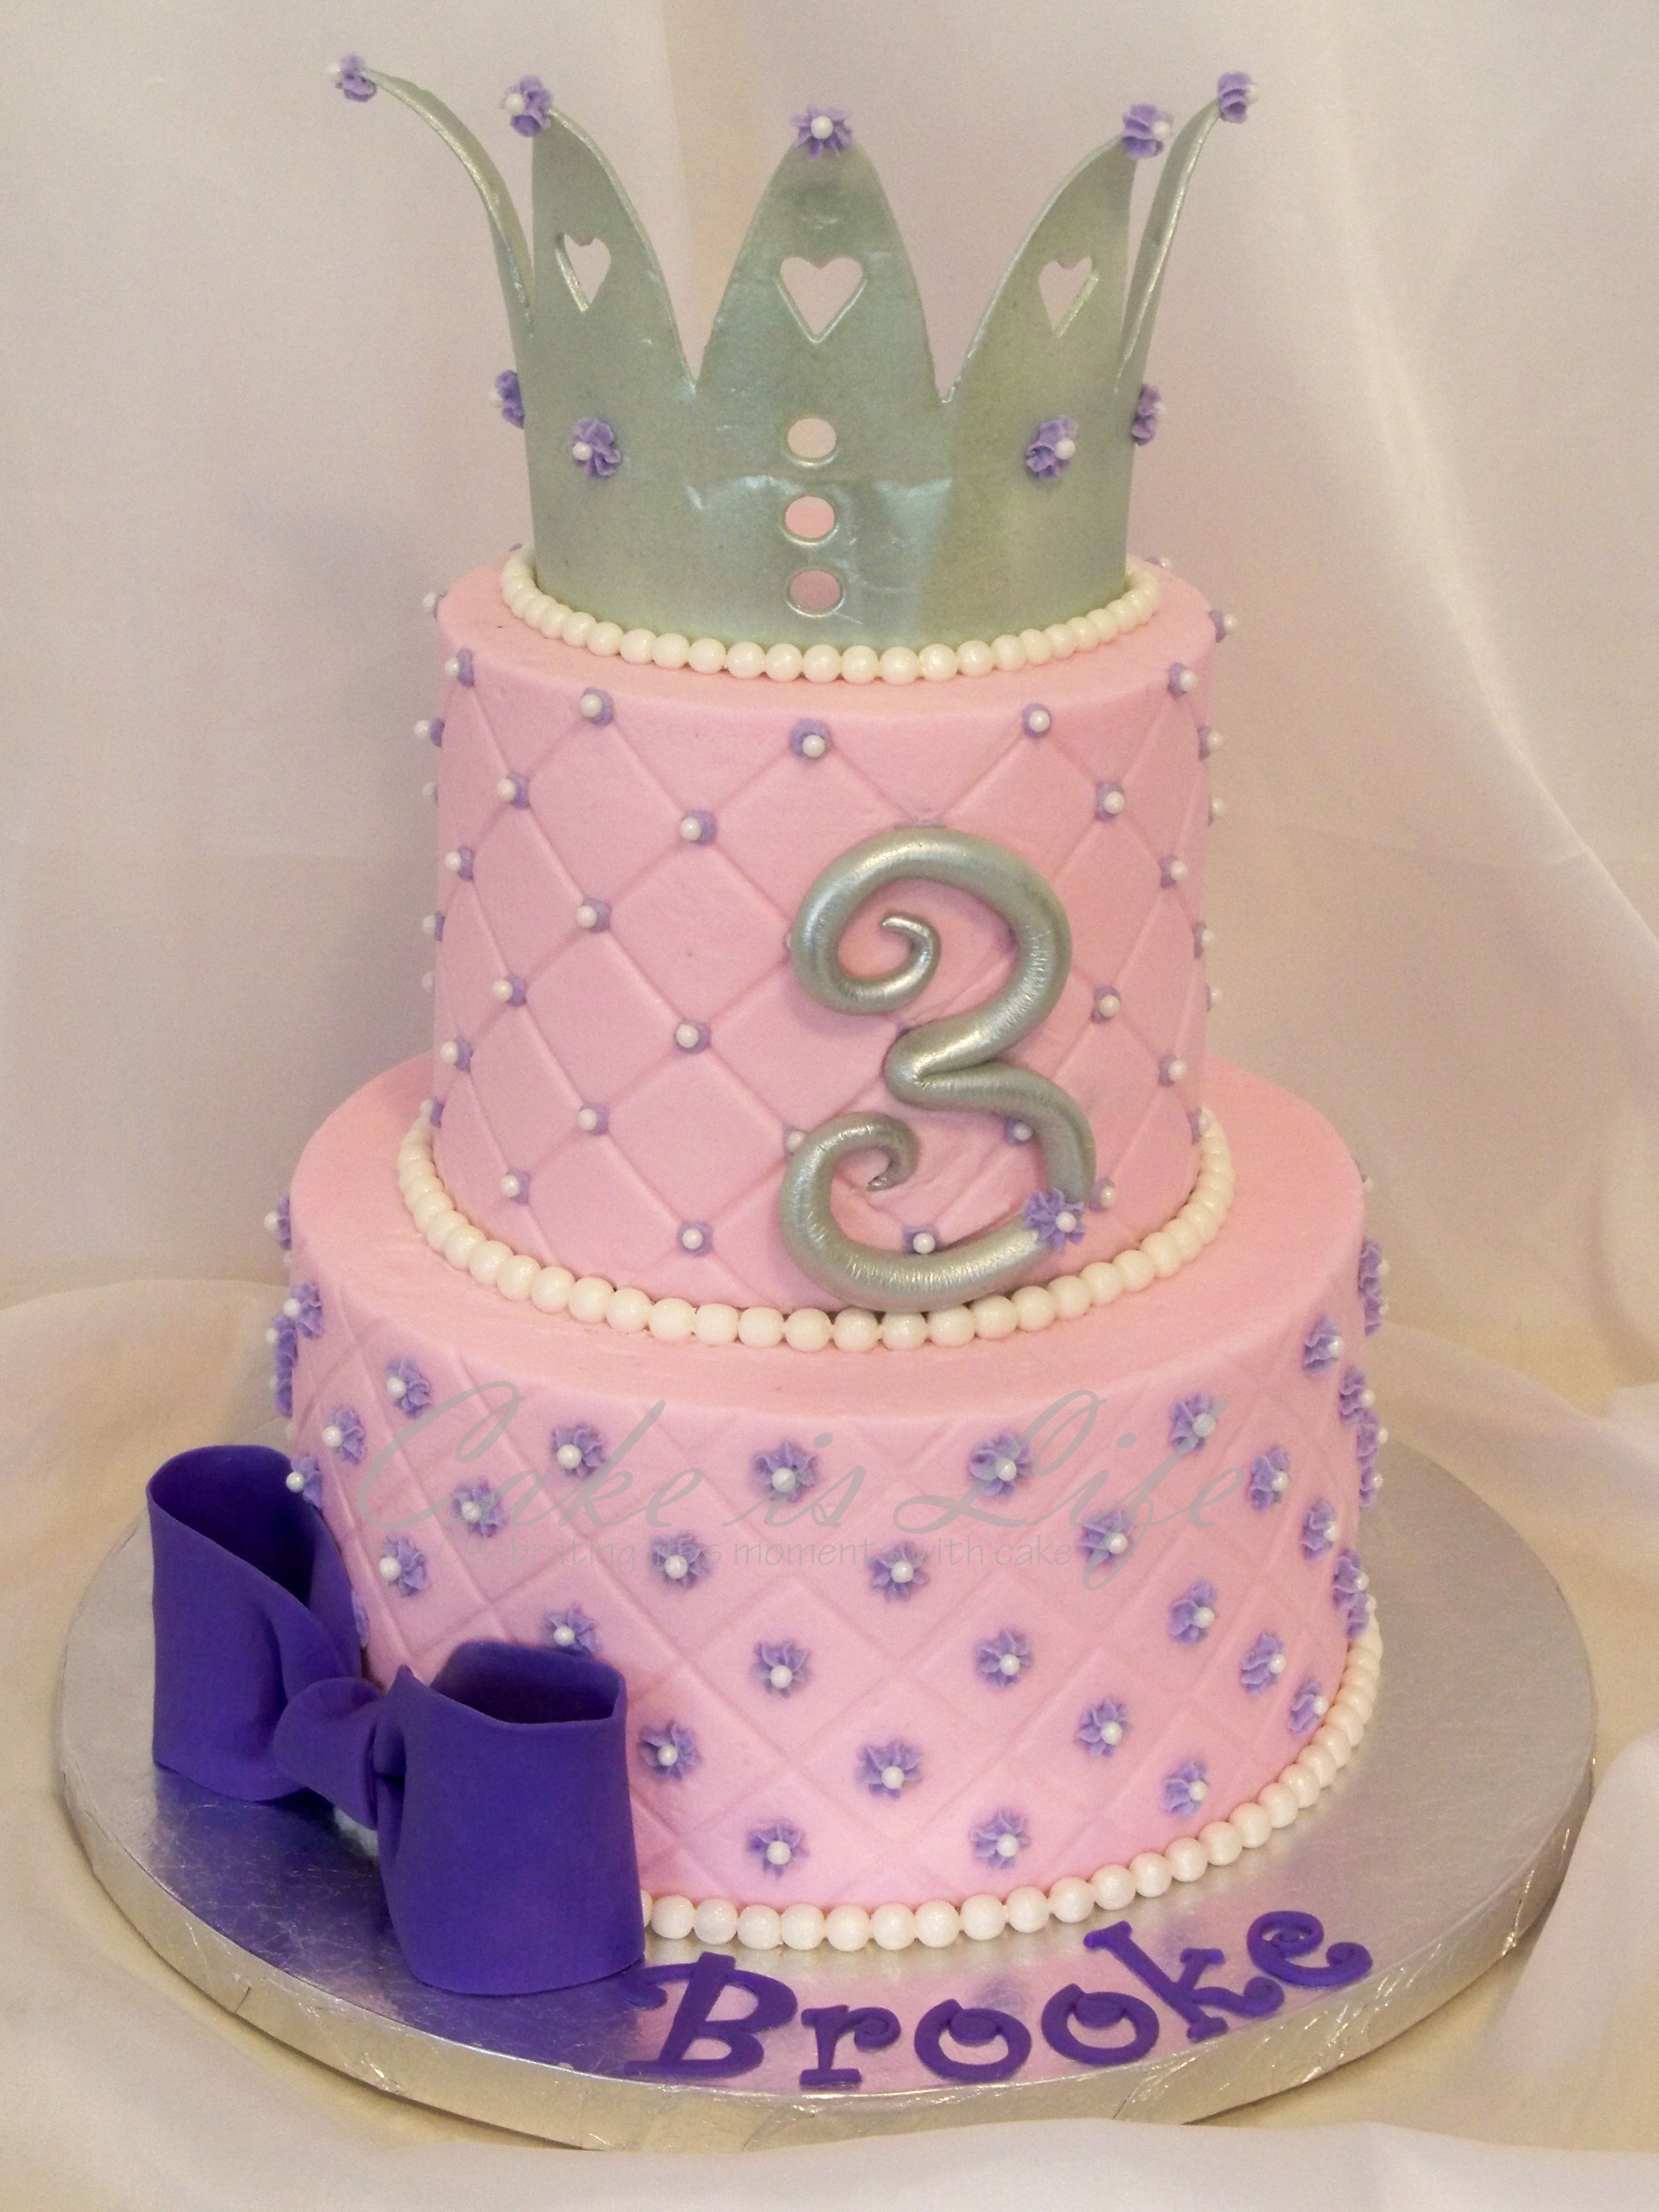 Happy Birthday Cakes For Girls Images And Pictures Happy - Cakes for princess birthday